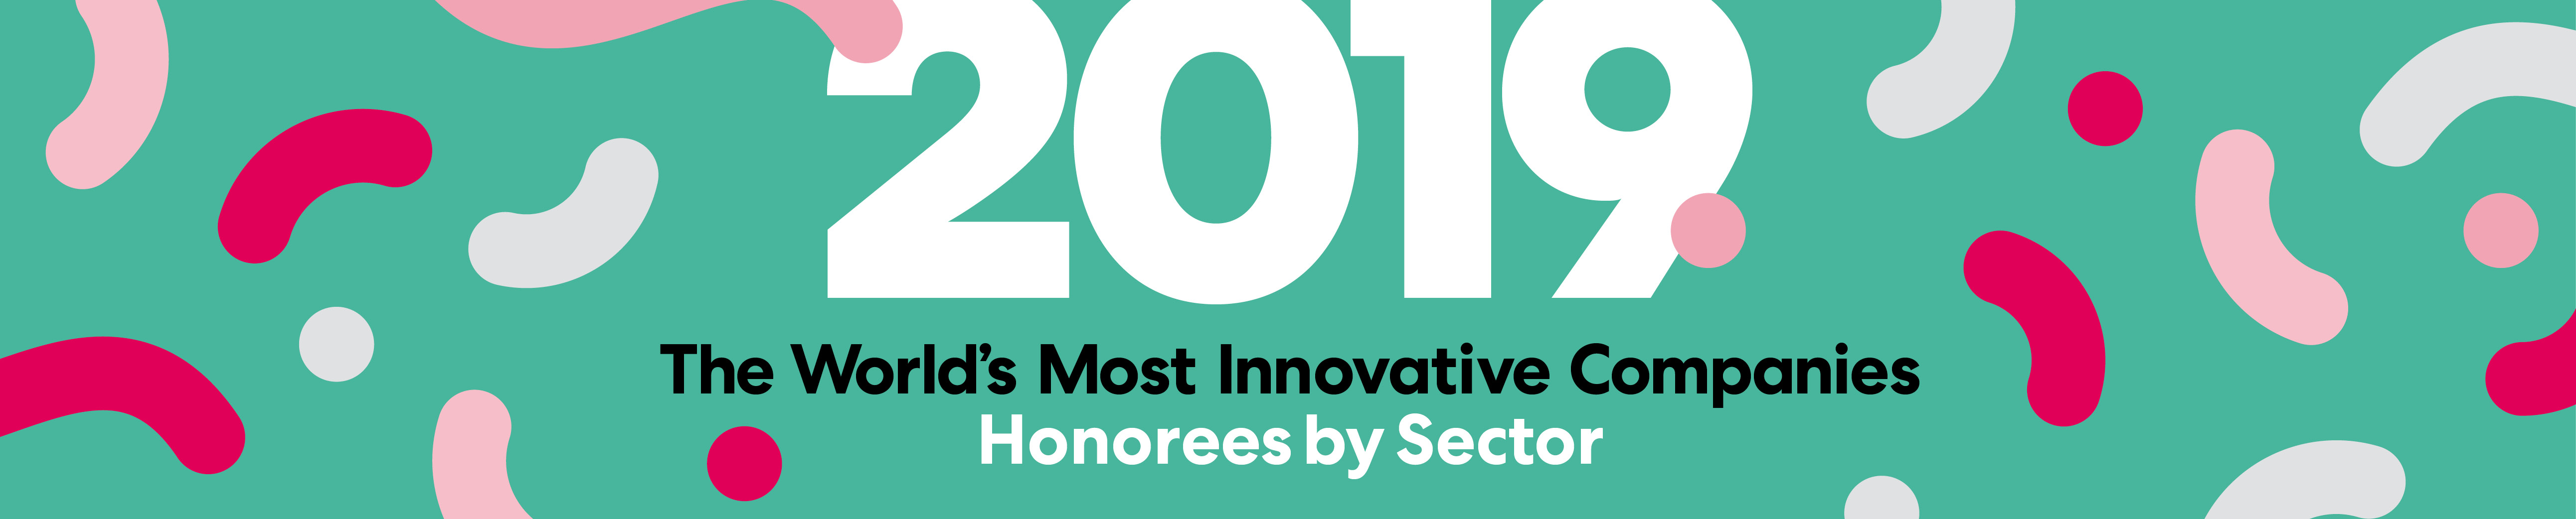 The World's 50 Most Innovative Companies of 2019 | Fast Company